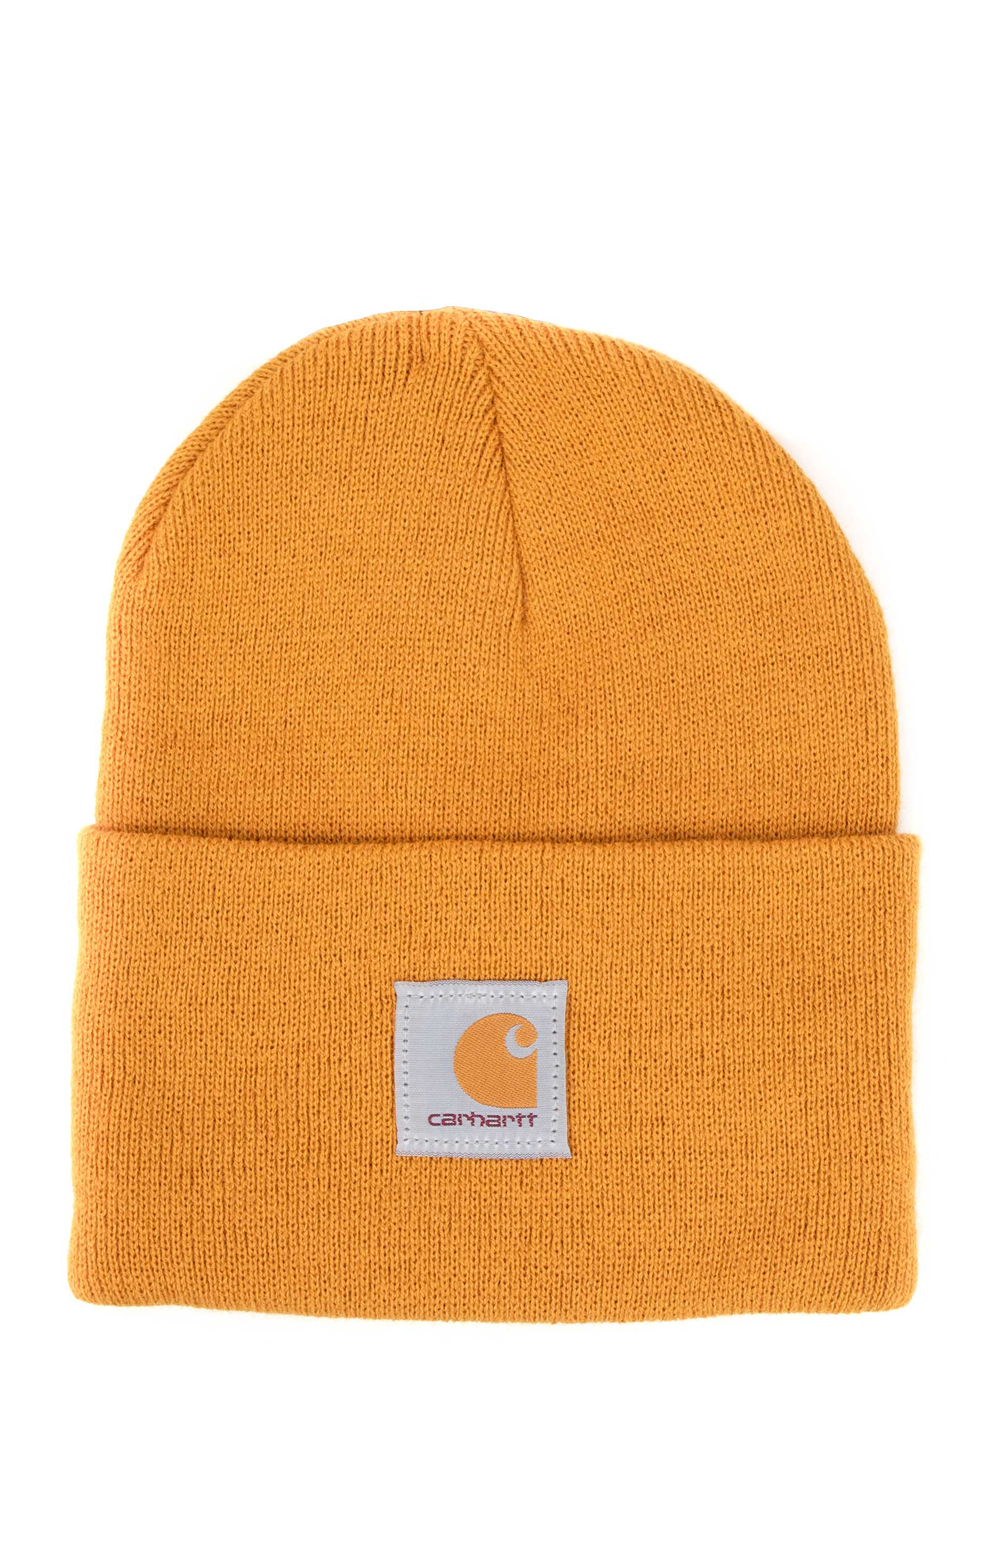 Acrylic Watch Hat - Carhartt Gold